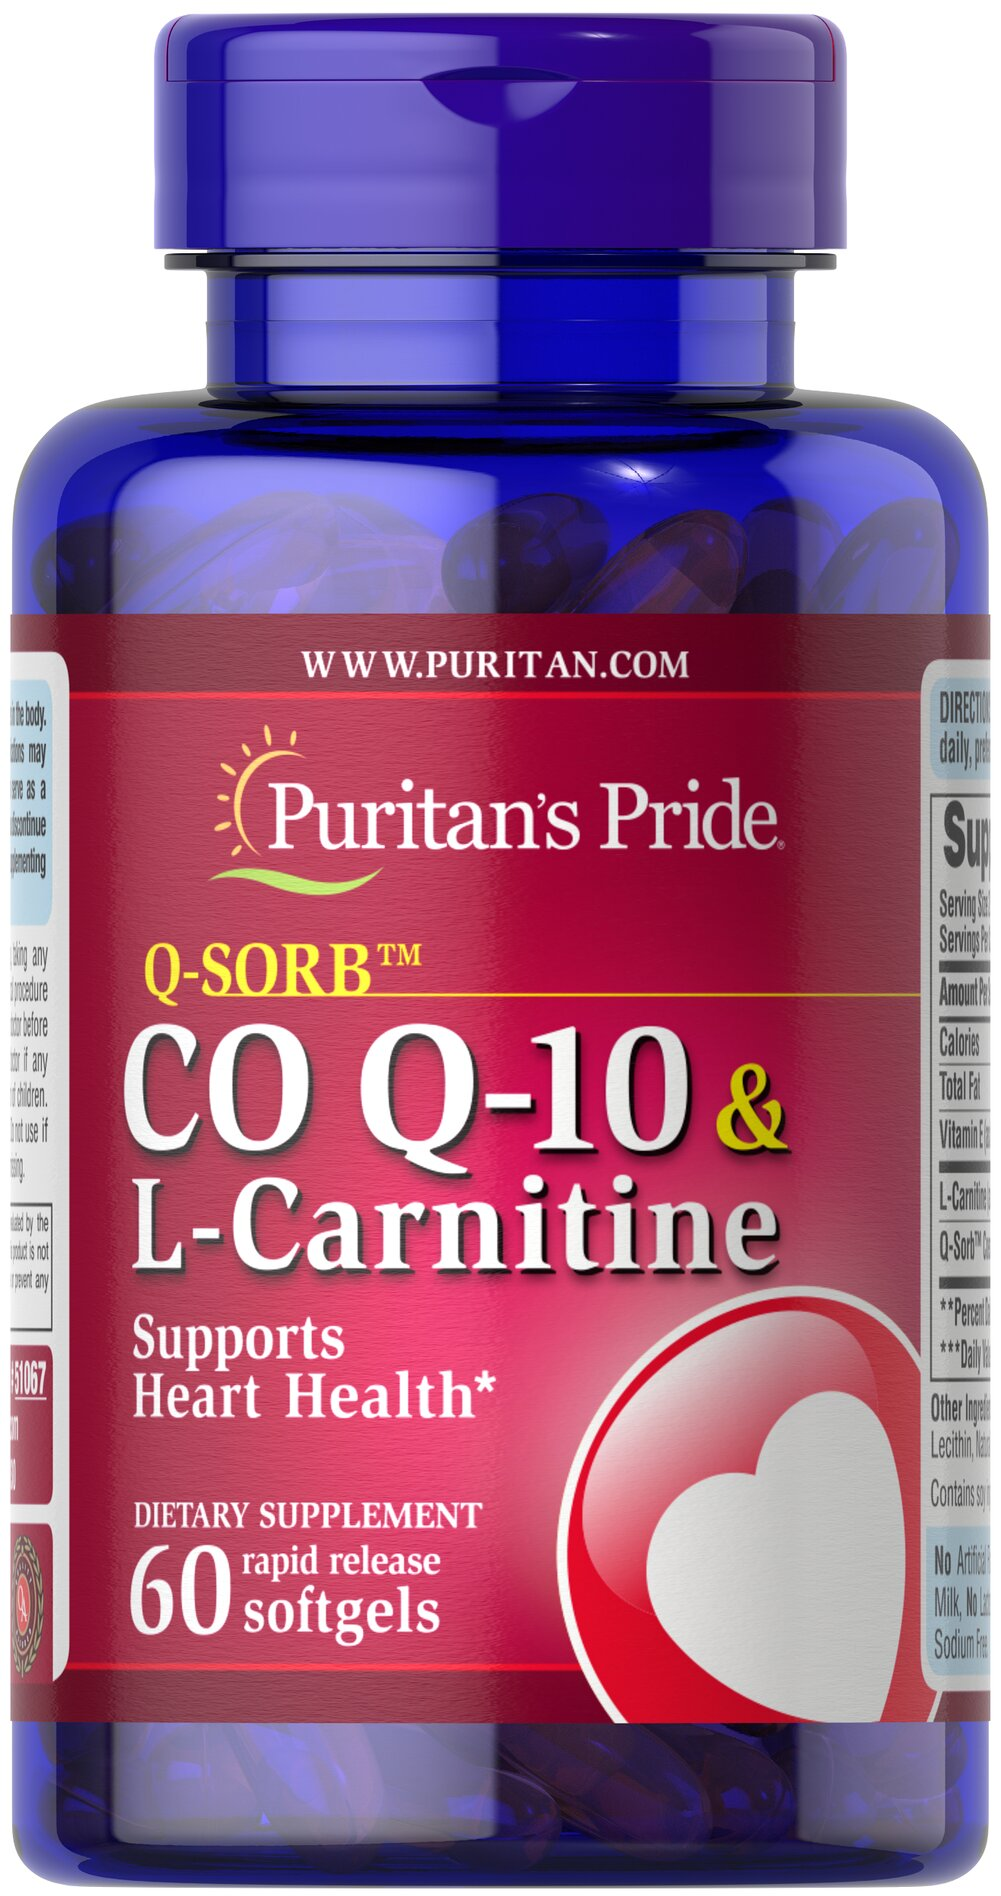 Q-SORB™ Co Q-10 30 mg plus L-Carnitine 250 mg <p>Provides powerful nutrients that support your heart**</p><p>Supports energy production**</p><p>Statin drugs can reduce Co Q-10 levels in the body, so taking Co Q-10 & L-Carnitine can replenish what Statin drugs can deplete++</p><p></p><p>++Note: Co Q-10 is not intended to serve as a replacement for Statin therapy, nor should you discontinue taking any prescribed medications while supple